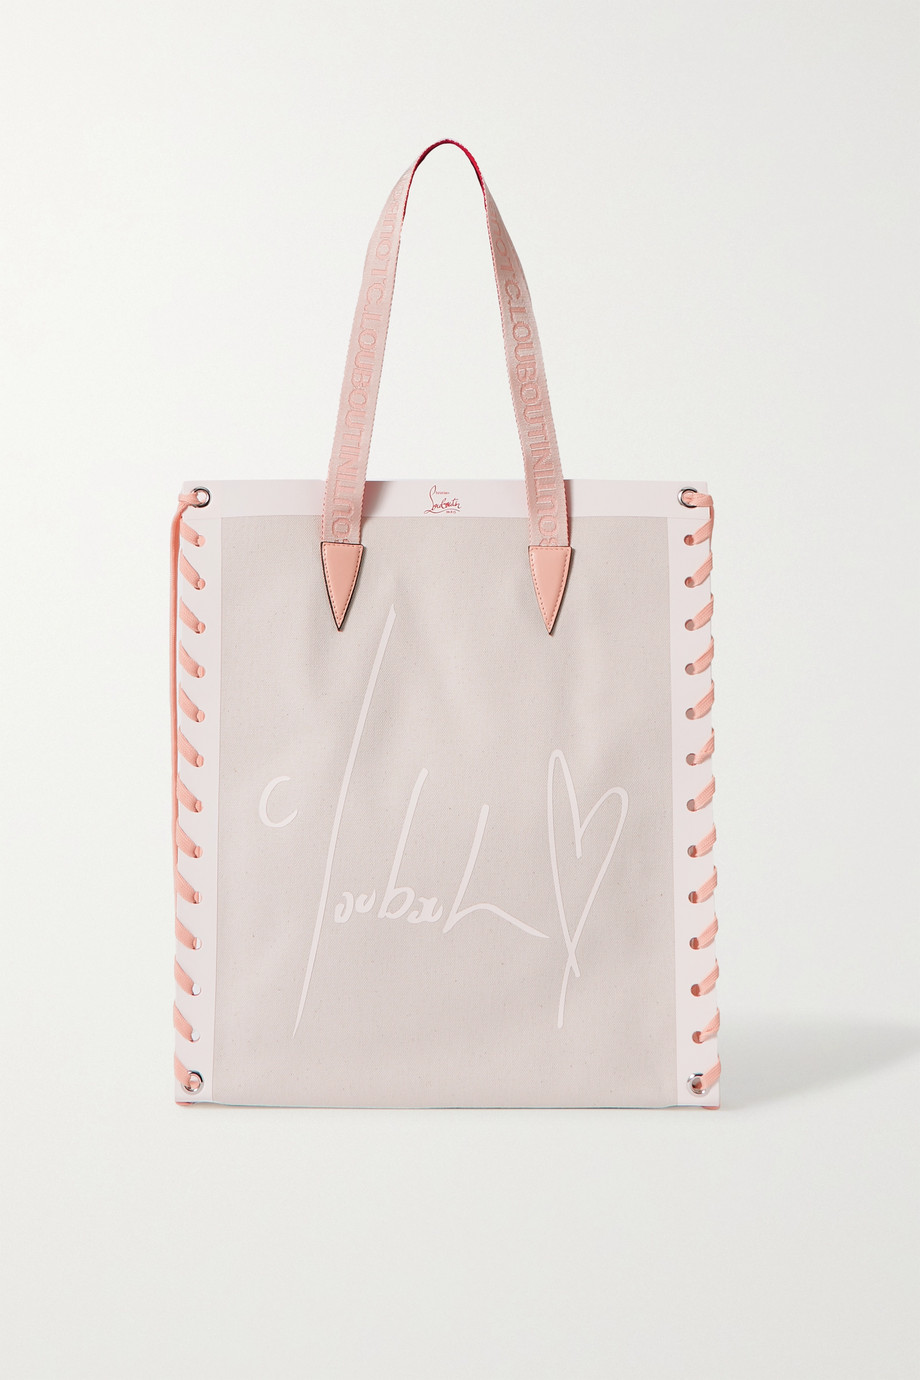 Christian Louboutin Cabalace small lace-up leather-trimmed printed canvas tote